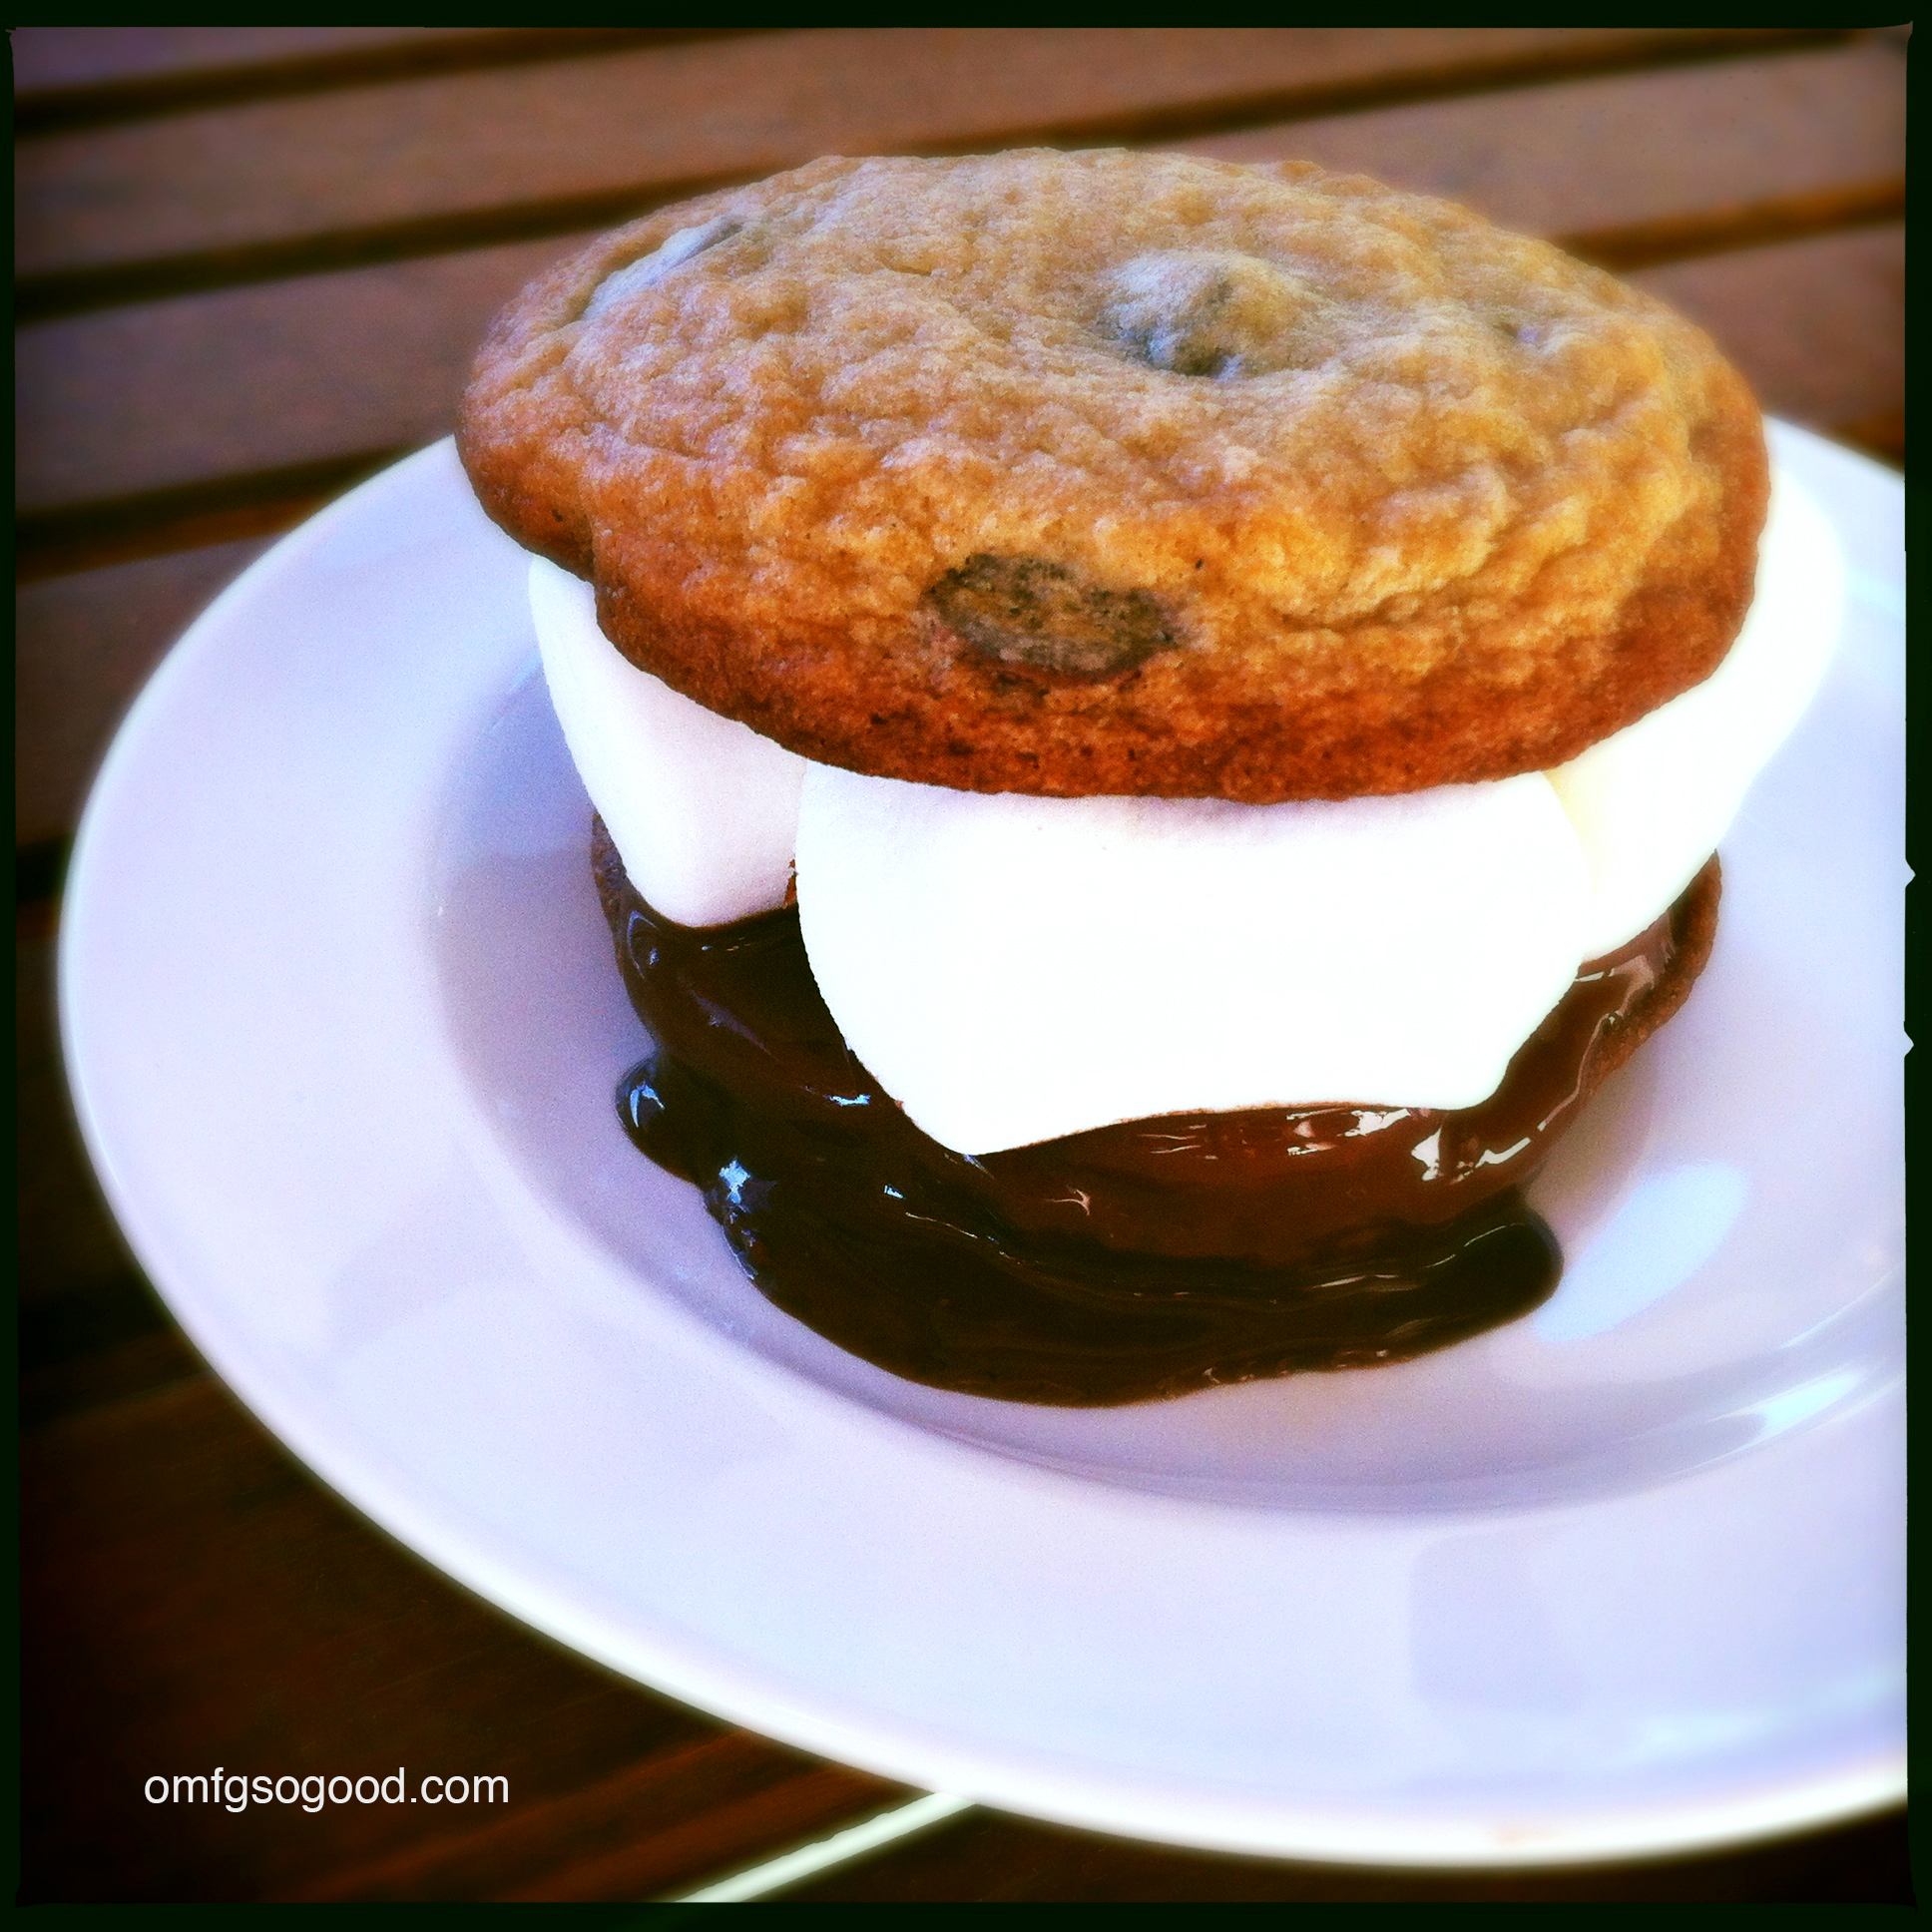 chocolate chip cookie peanut butter cup s'mores | omfg. so good.